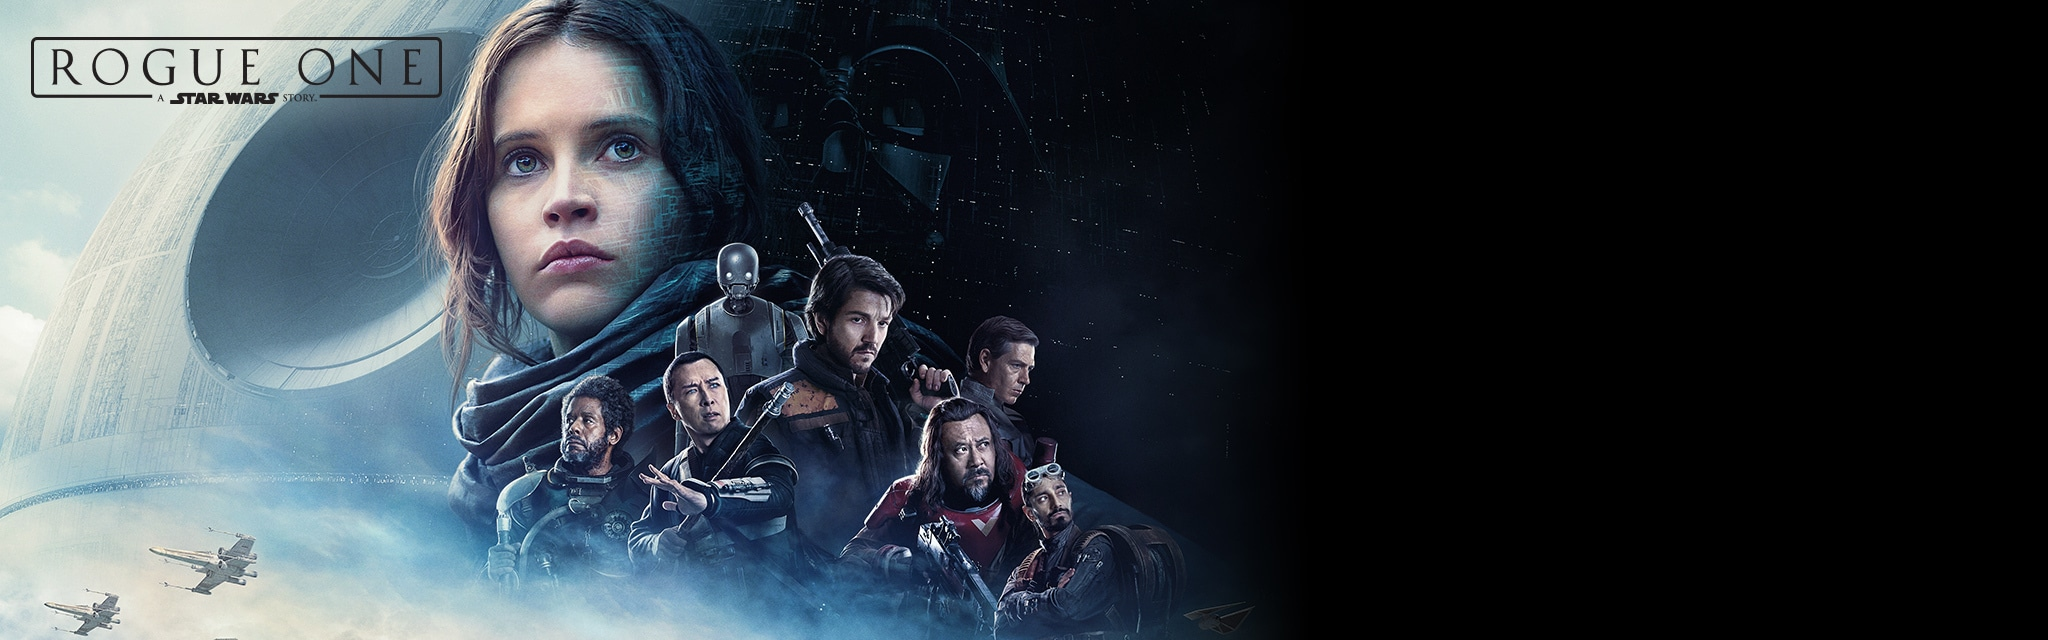 Rogue One - Group Shot - Get Showtimes - Hero - PH